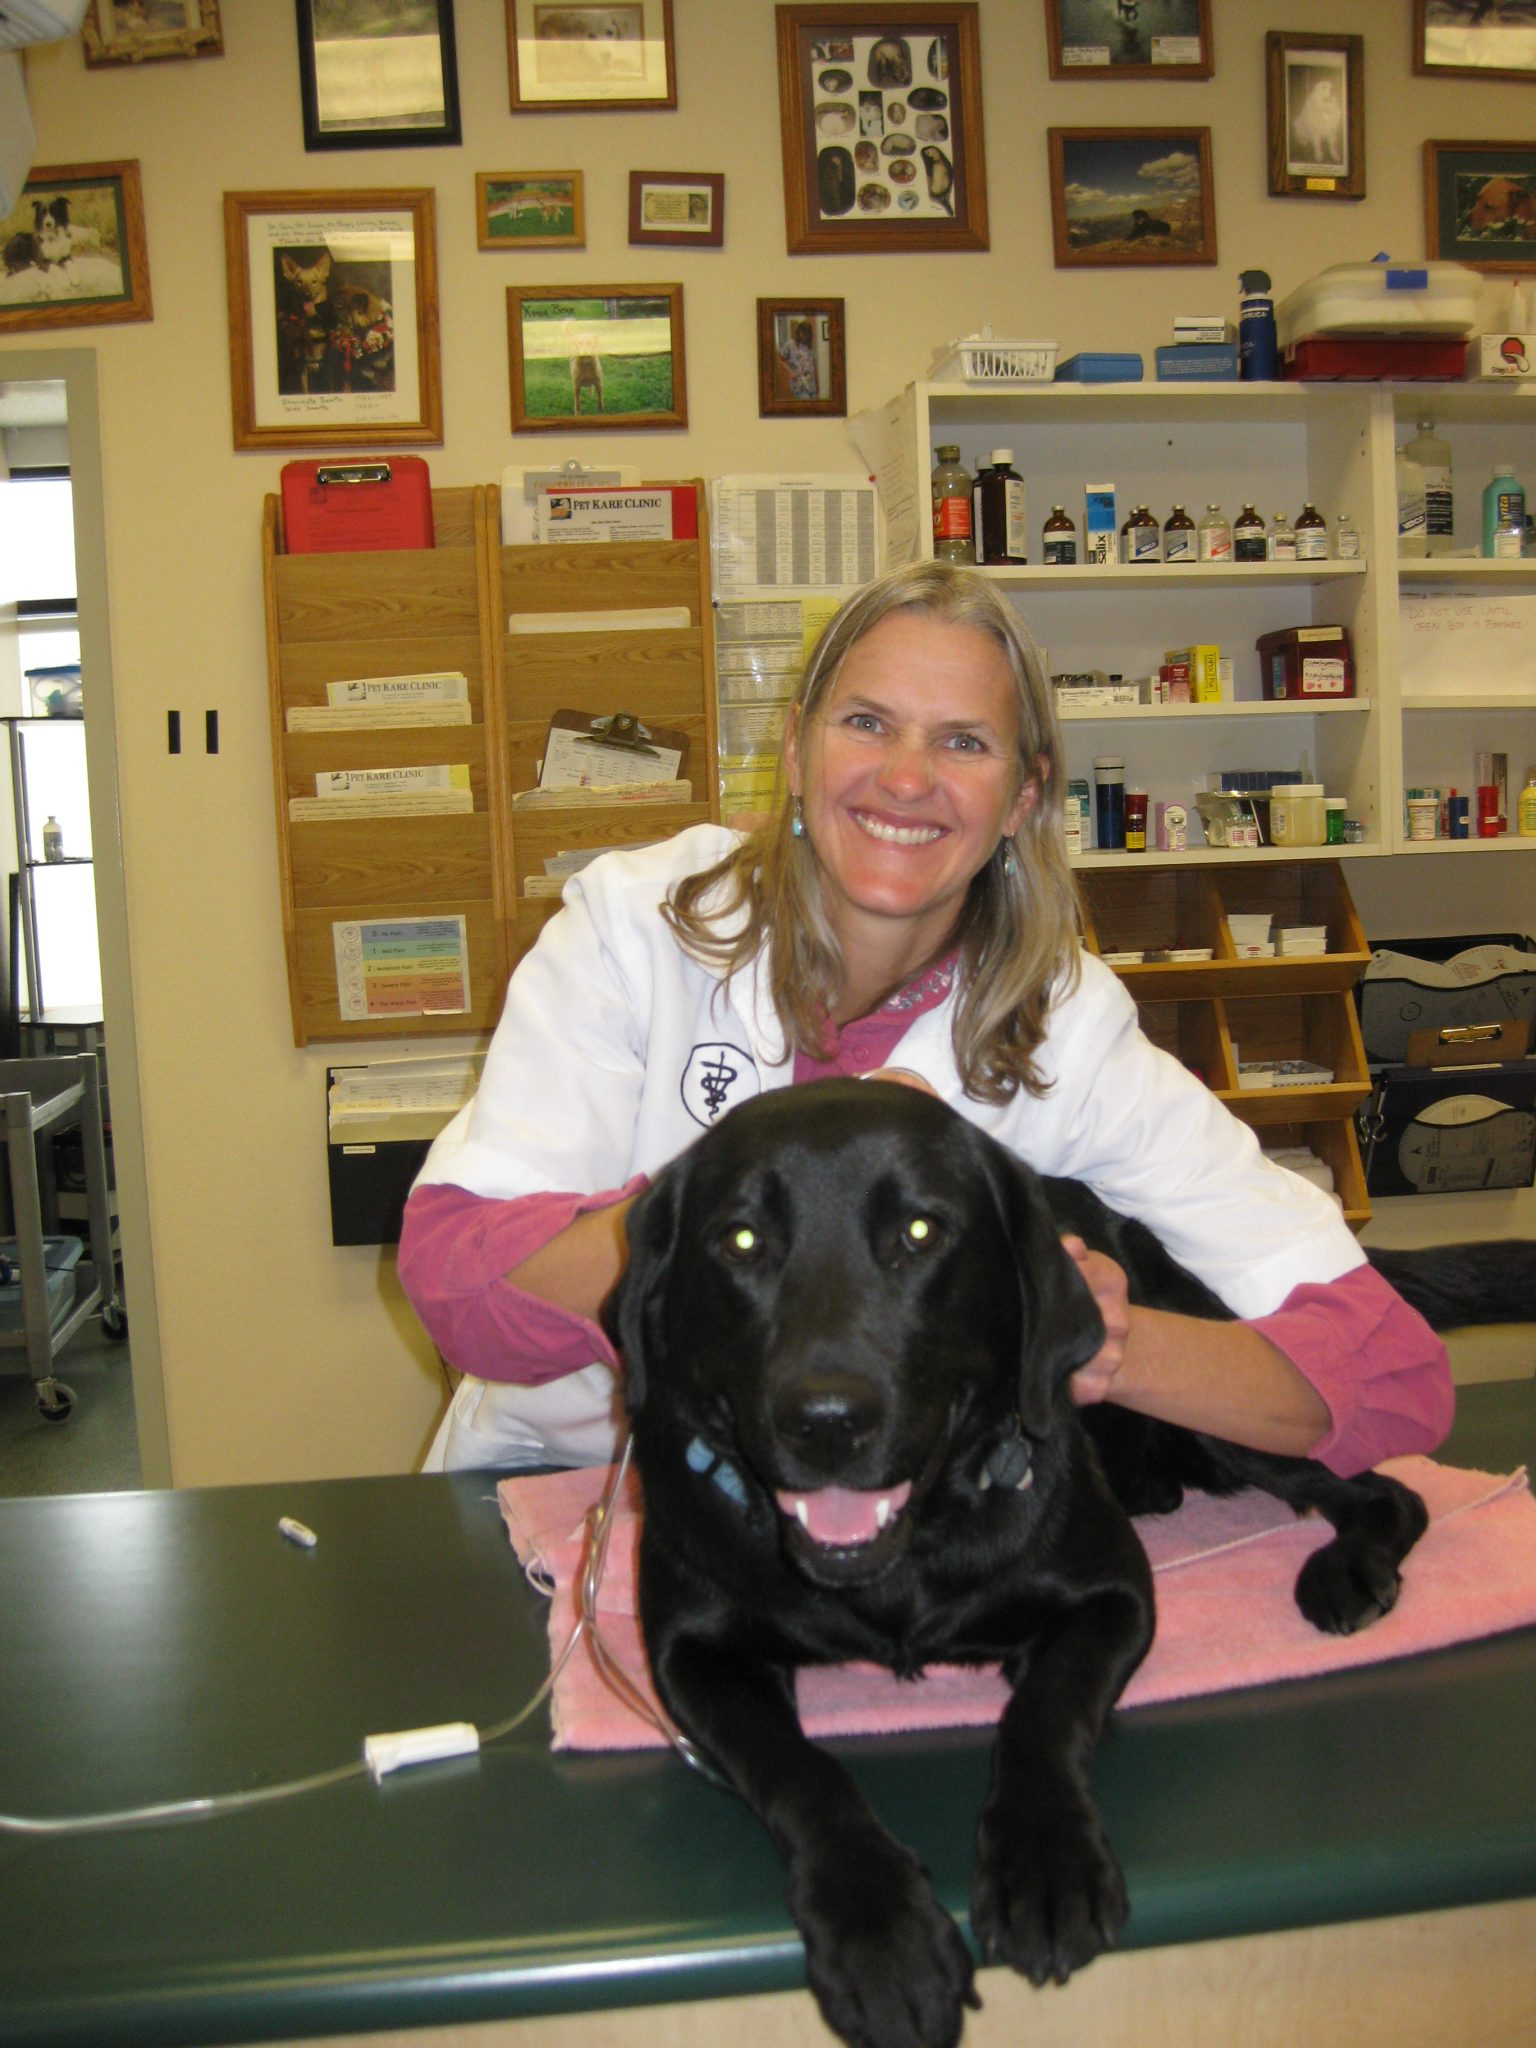 Colorado in job physical therapy - Dr Susan 1